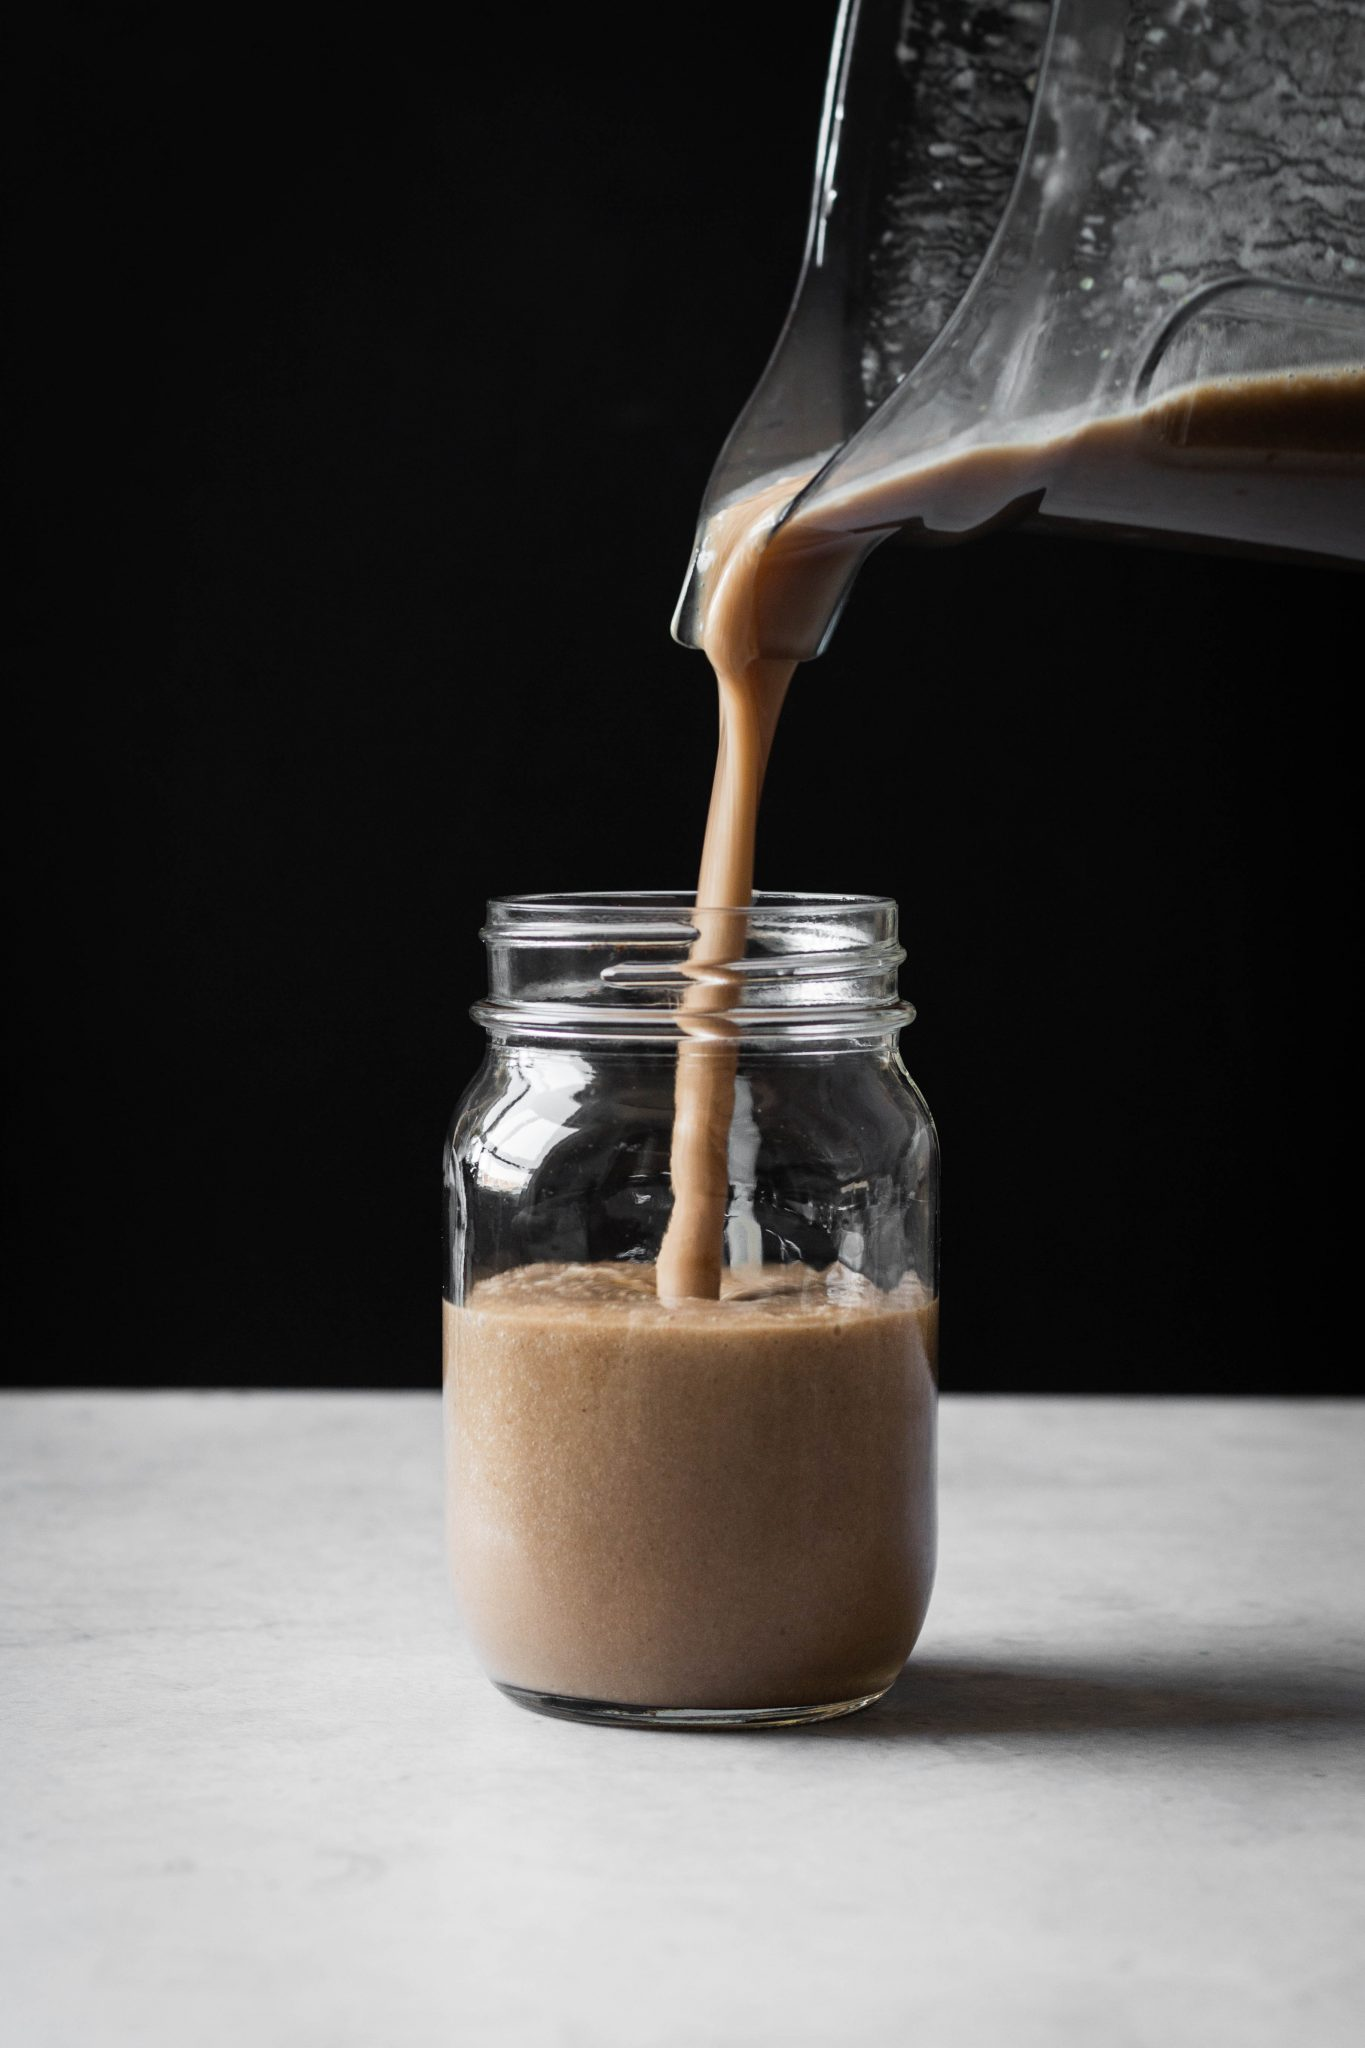 Frappuccino poured in a jar